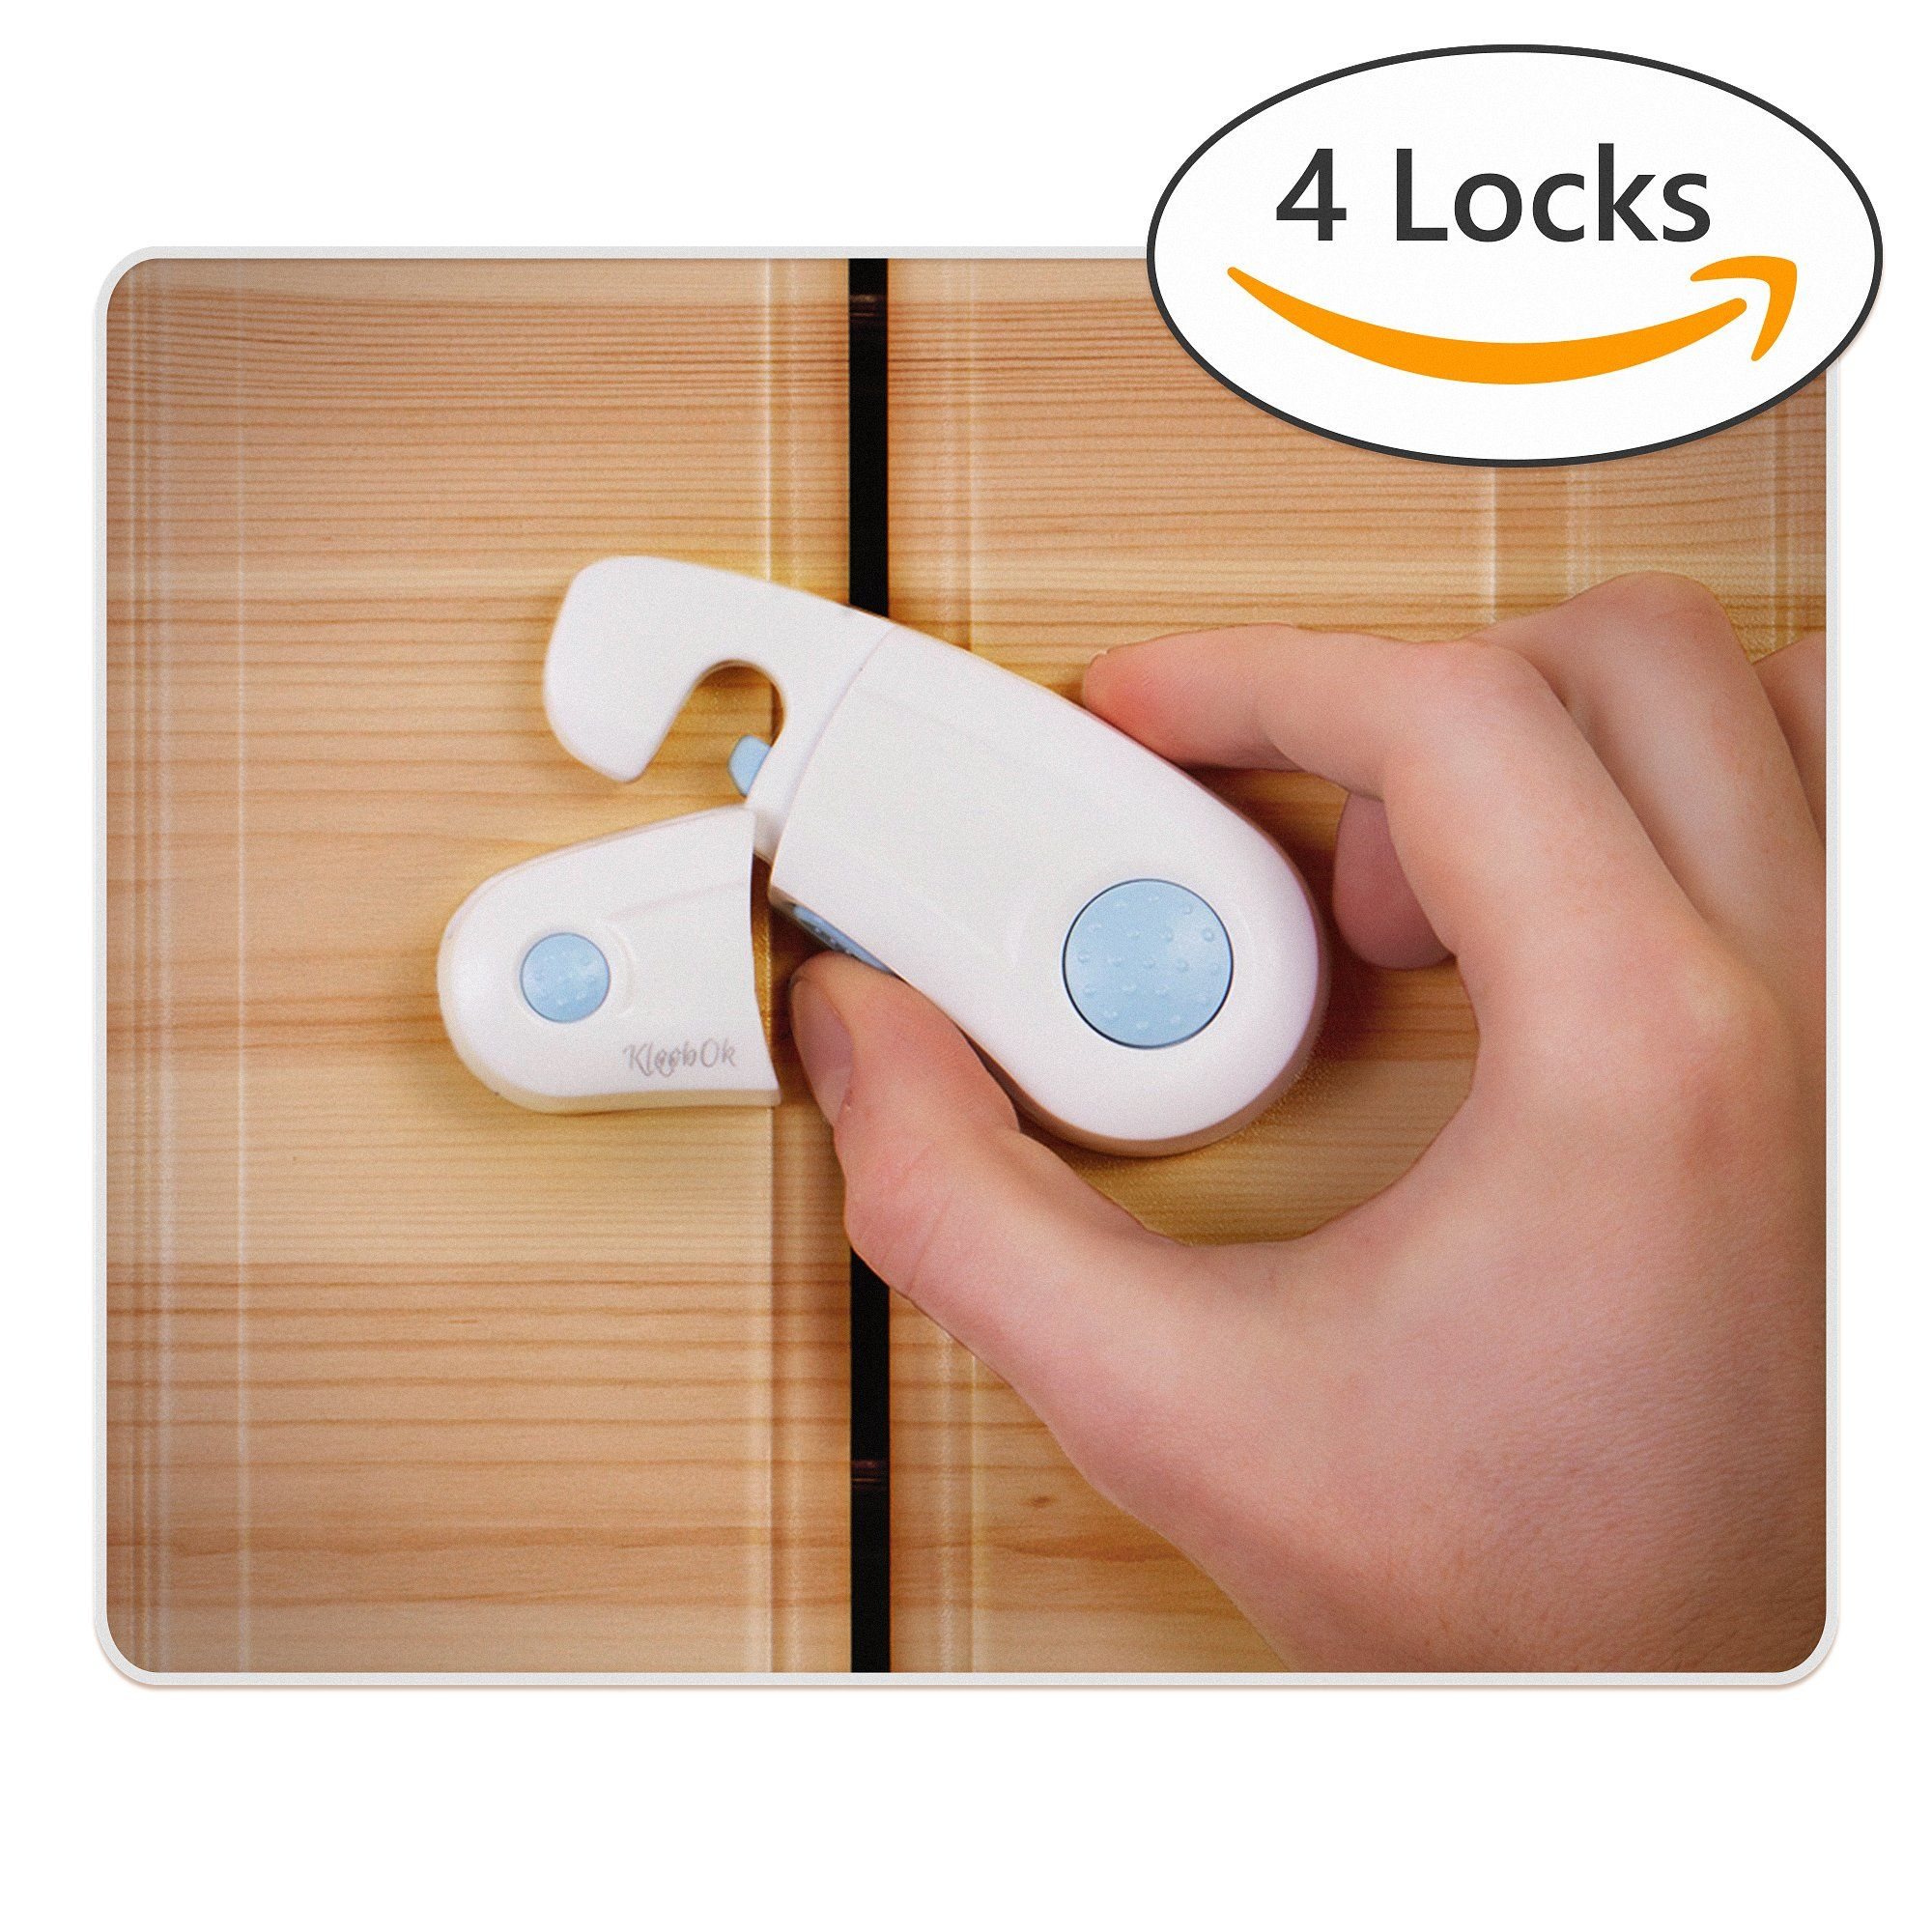 Cabinet Locks Pack of 4 Child Safety Locks for Cabinets Child